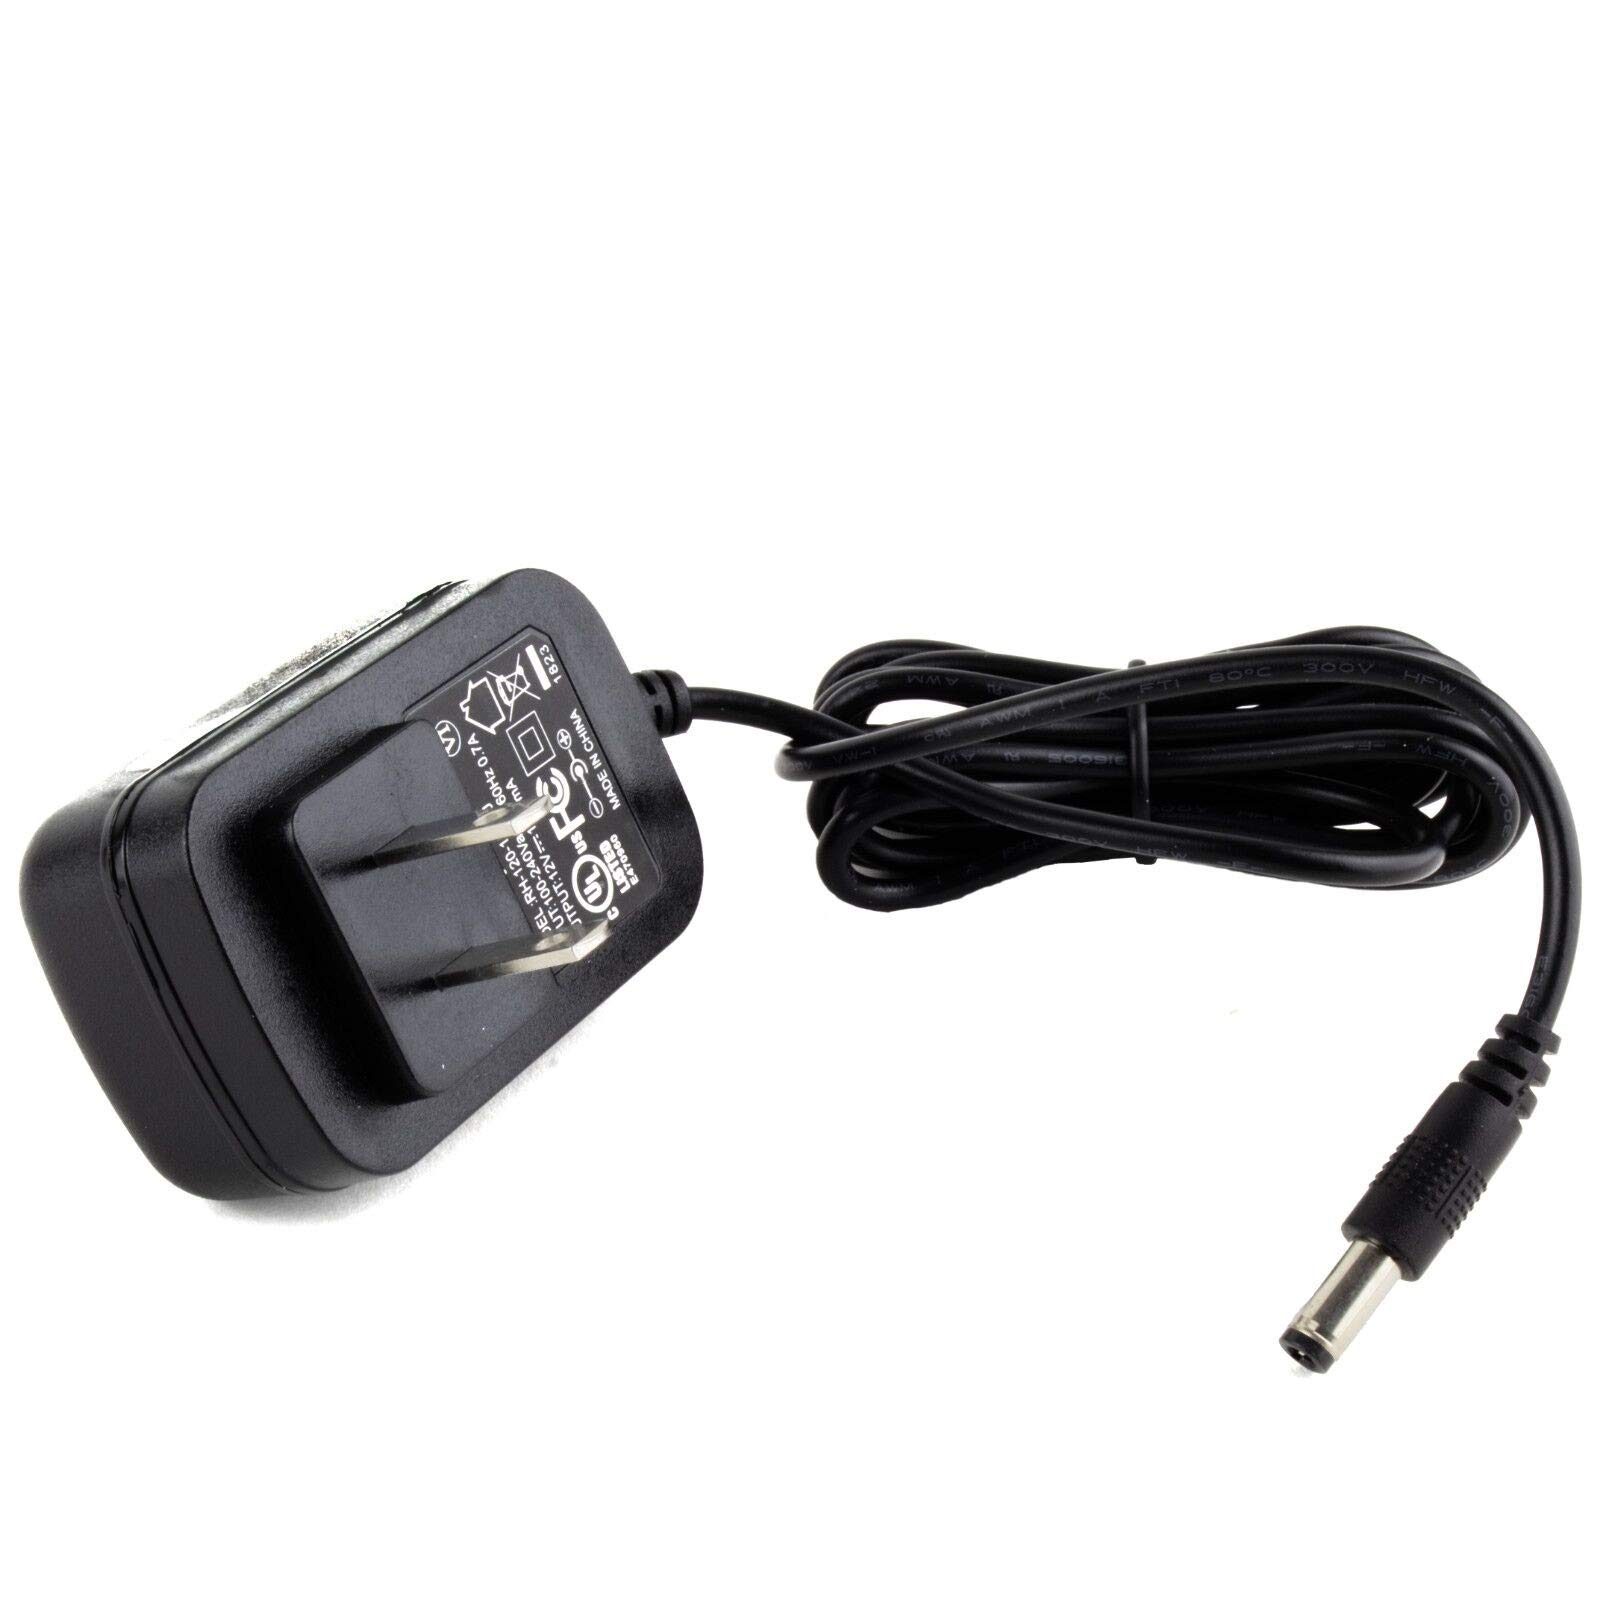 MyVolts 12V Power Supply Adaptor Compatible with Brother P-Touch 1000BTS, P-Touch 1005BTS Label Printer - US Plug - Premium by MyVolts (Image #3)